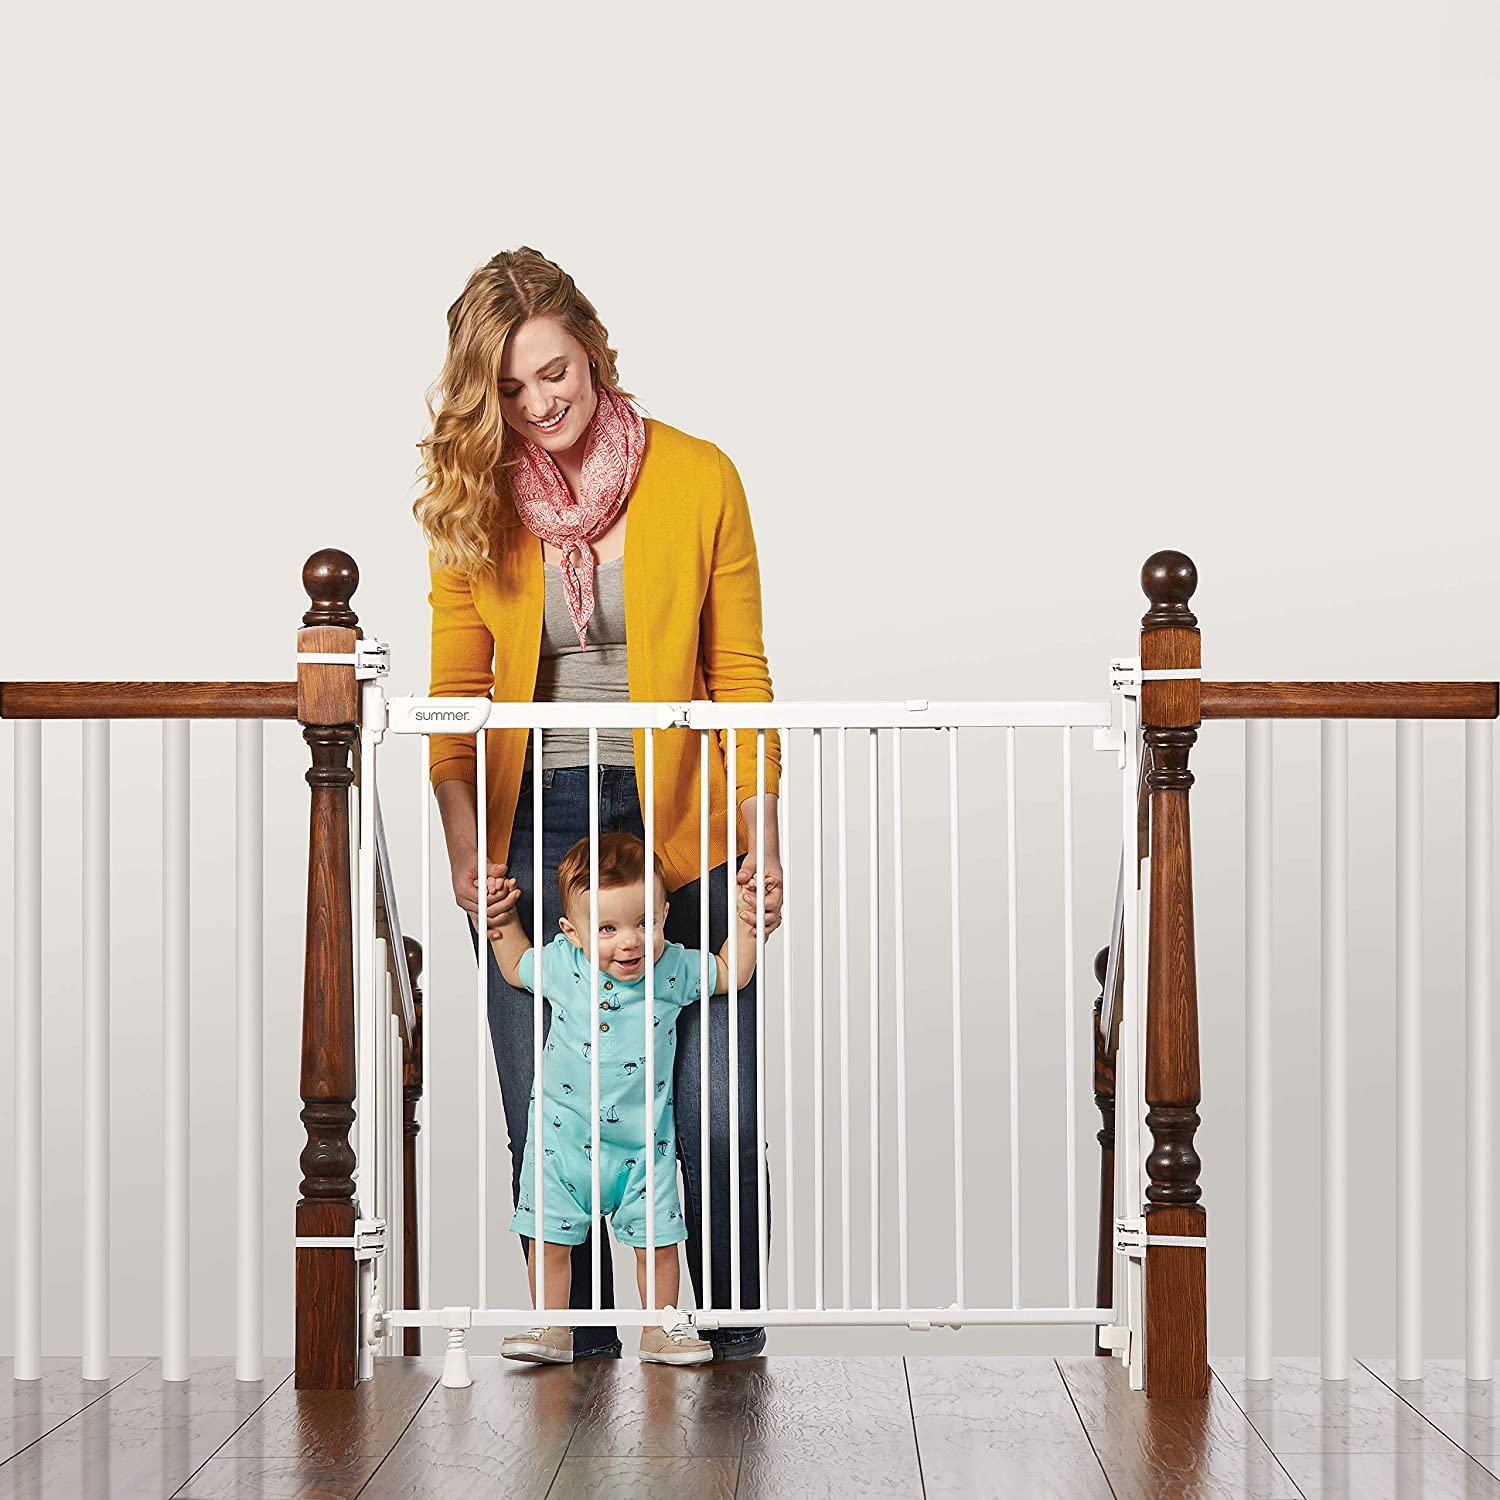 "Summer Infant 27903Z Banister & Stair Safety Gate with Extra Wide Door, Metal, 31"" - 46"", White, 31-46"""